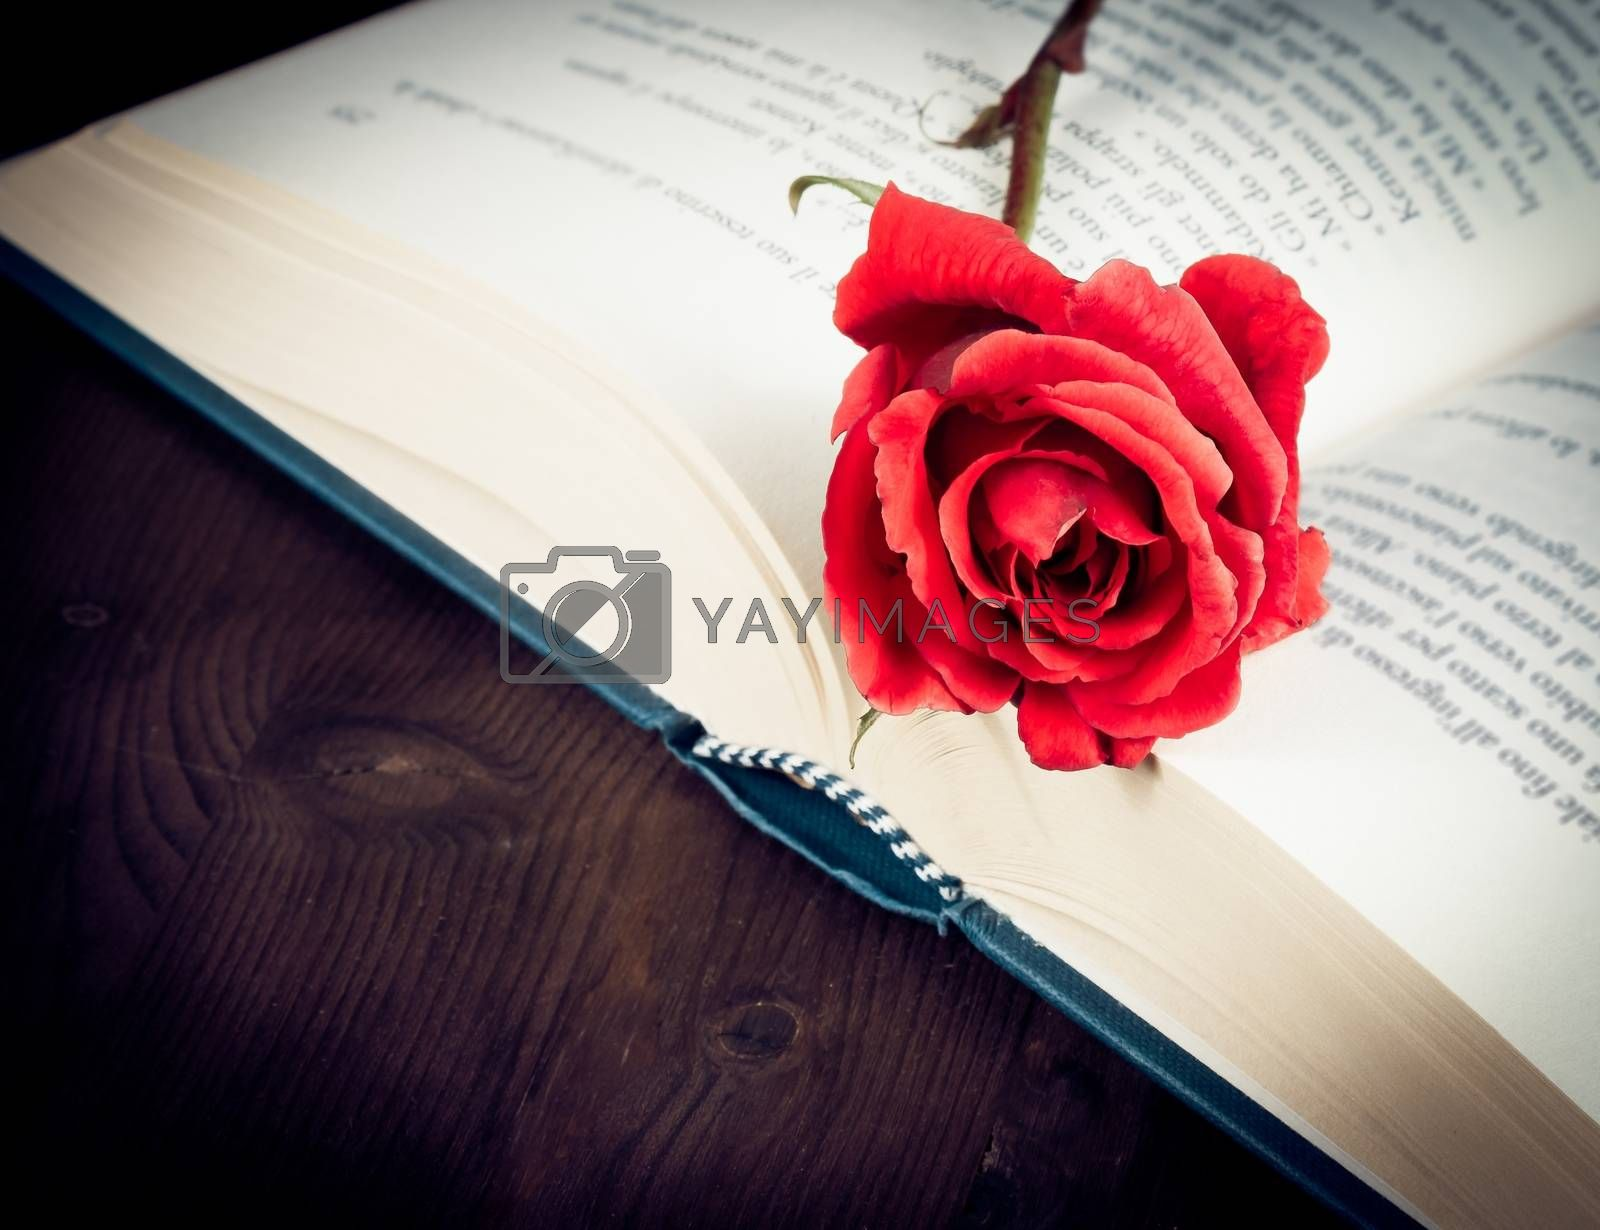 detail of red rose on the open book on old wood background with space for text, old style